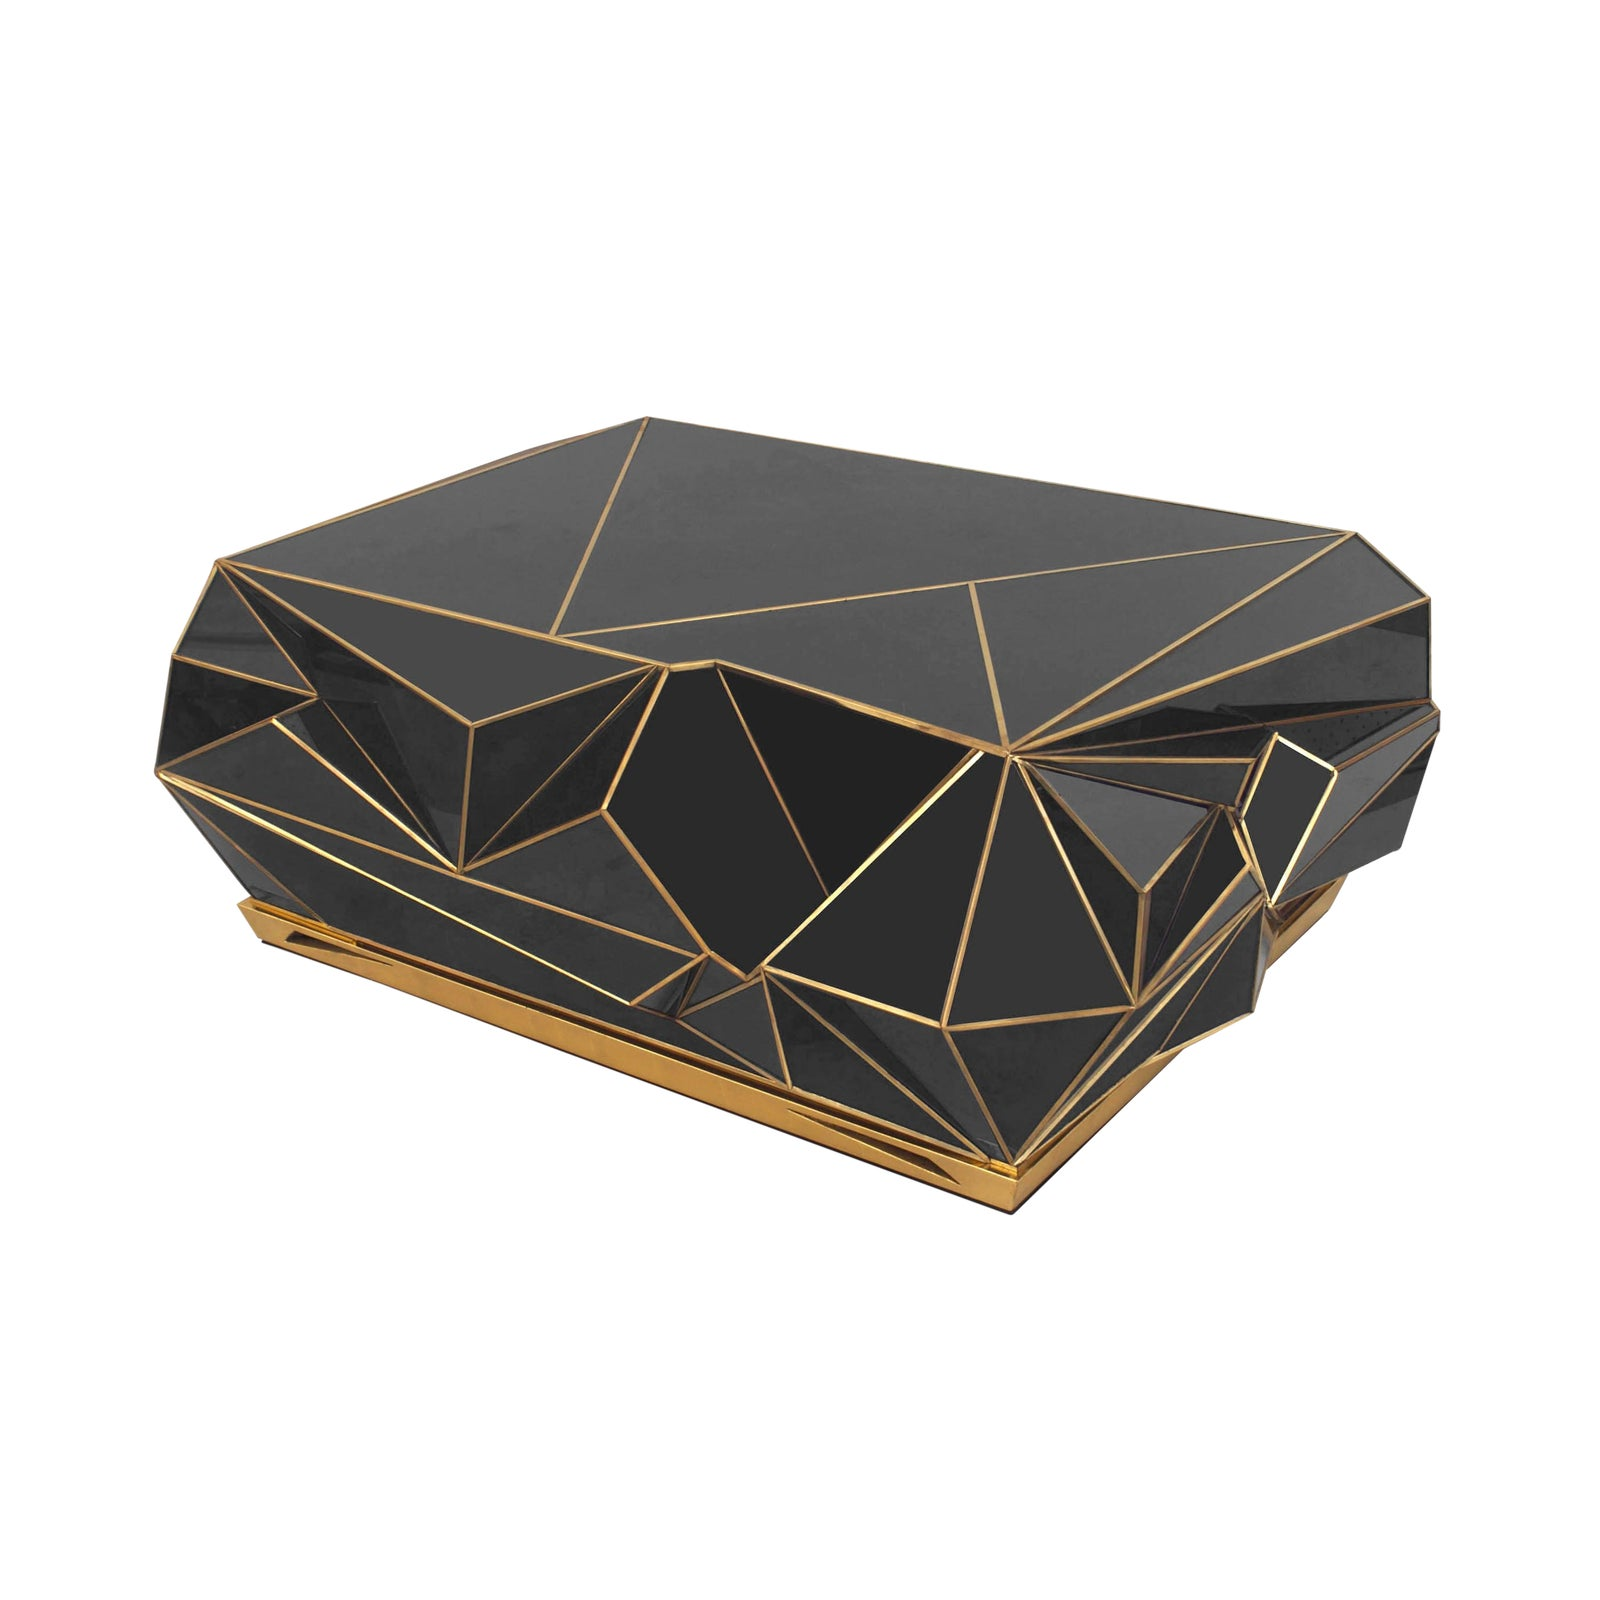 Luxury Contemporary Brass Trimmed Glass Geometric Coffee Table